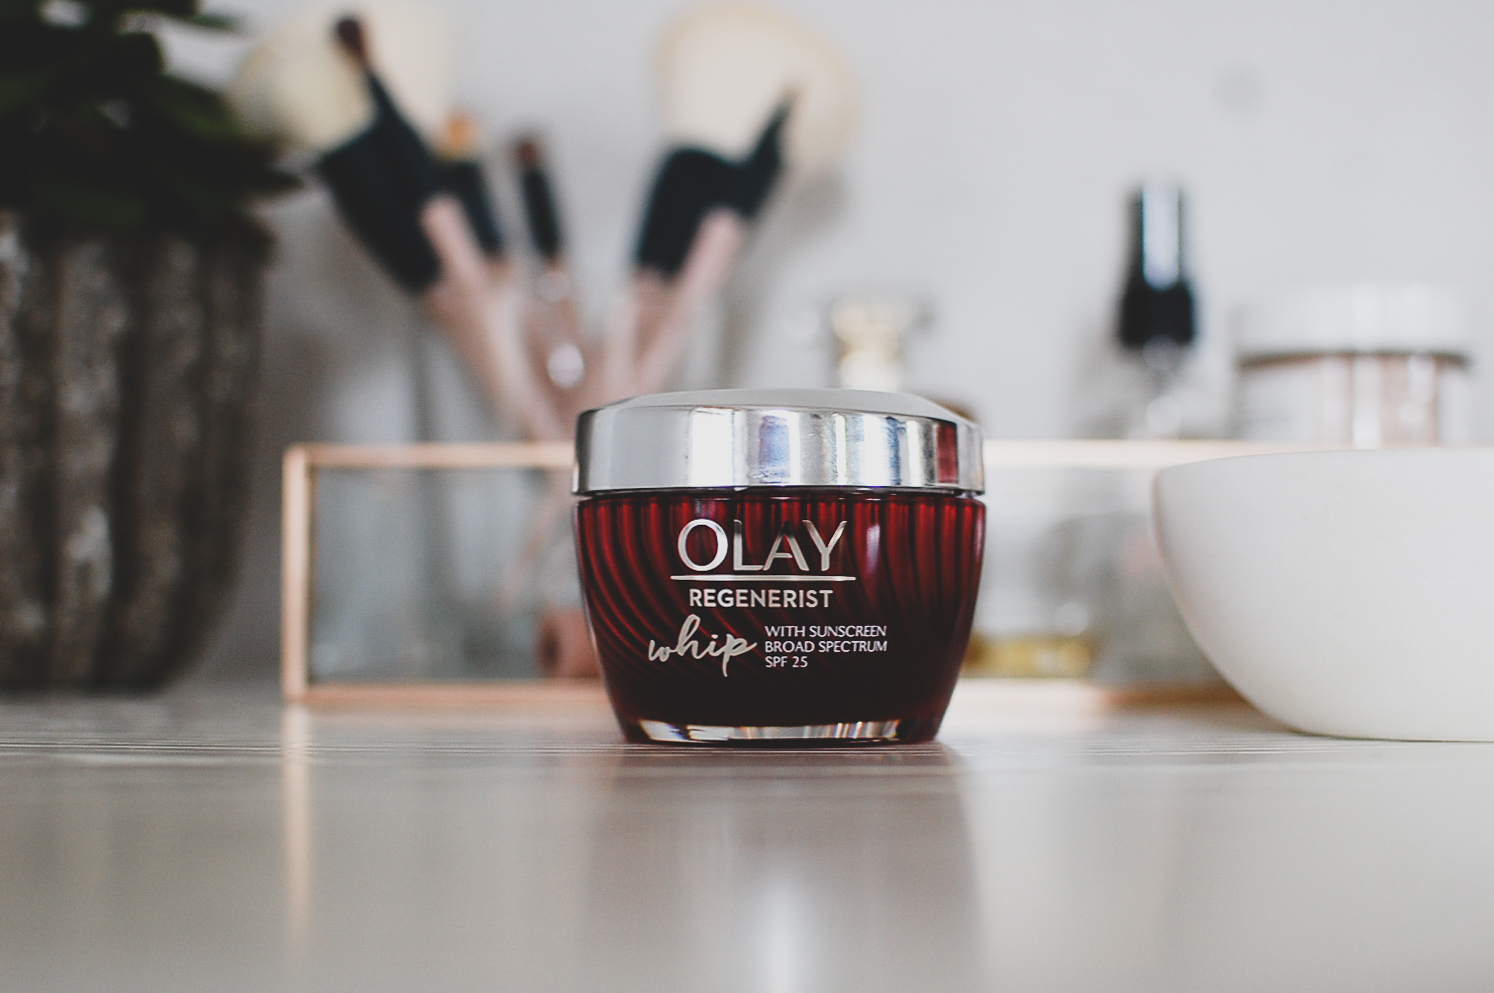 I Found #mySPFMatch: Olay Regenerist Whip with SPF is Not Your Average Sunscreen